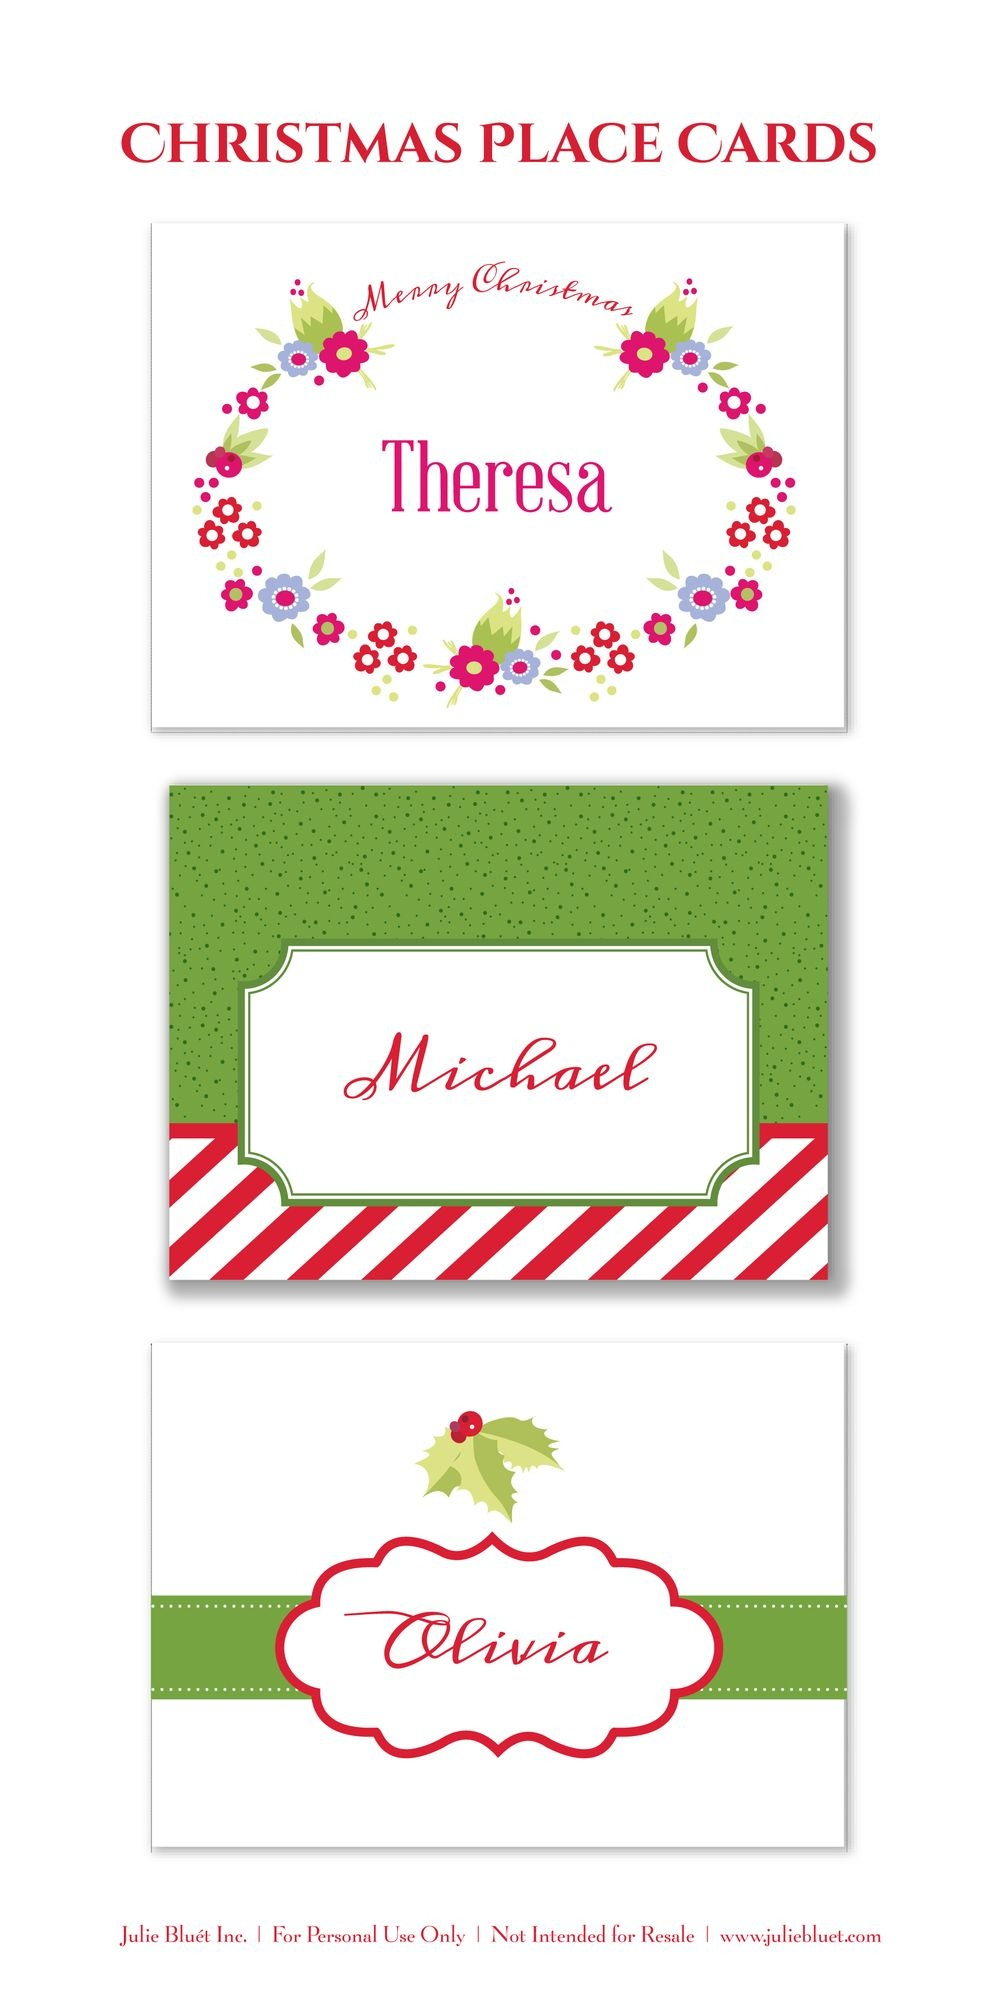 Here Are Three Free Printable Christmas Place Cards For Your Holiday - Free Printable Place Cards